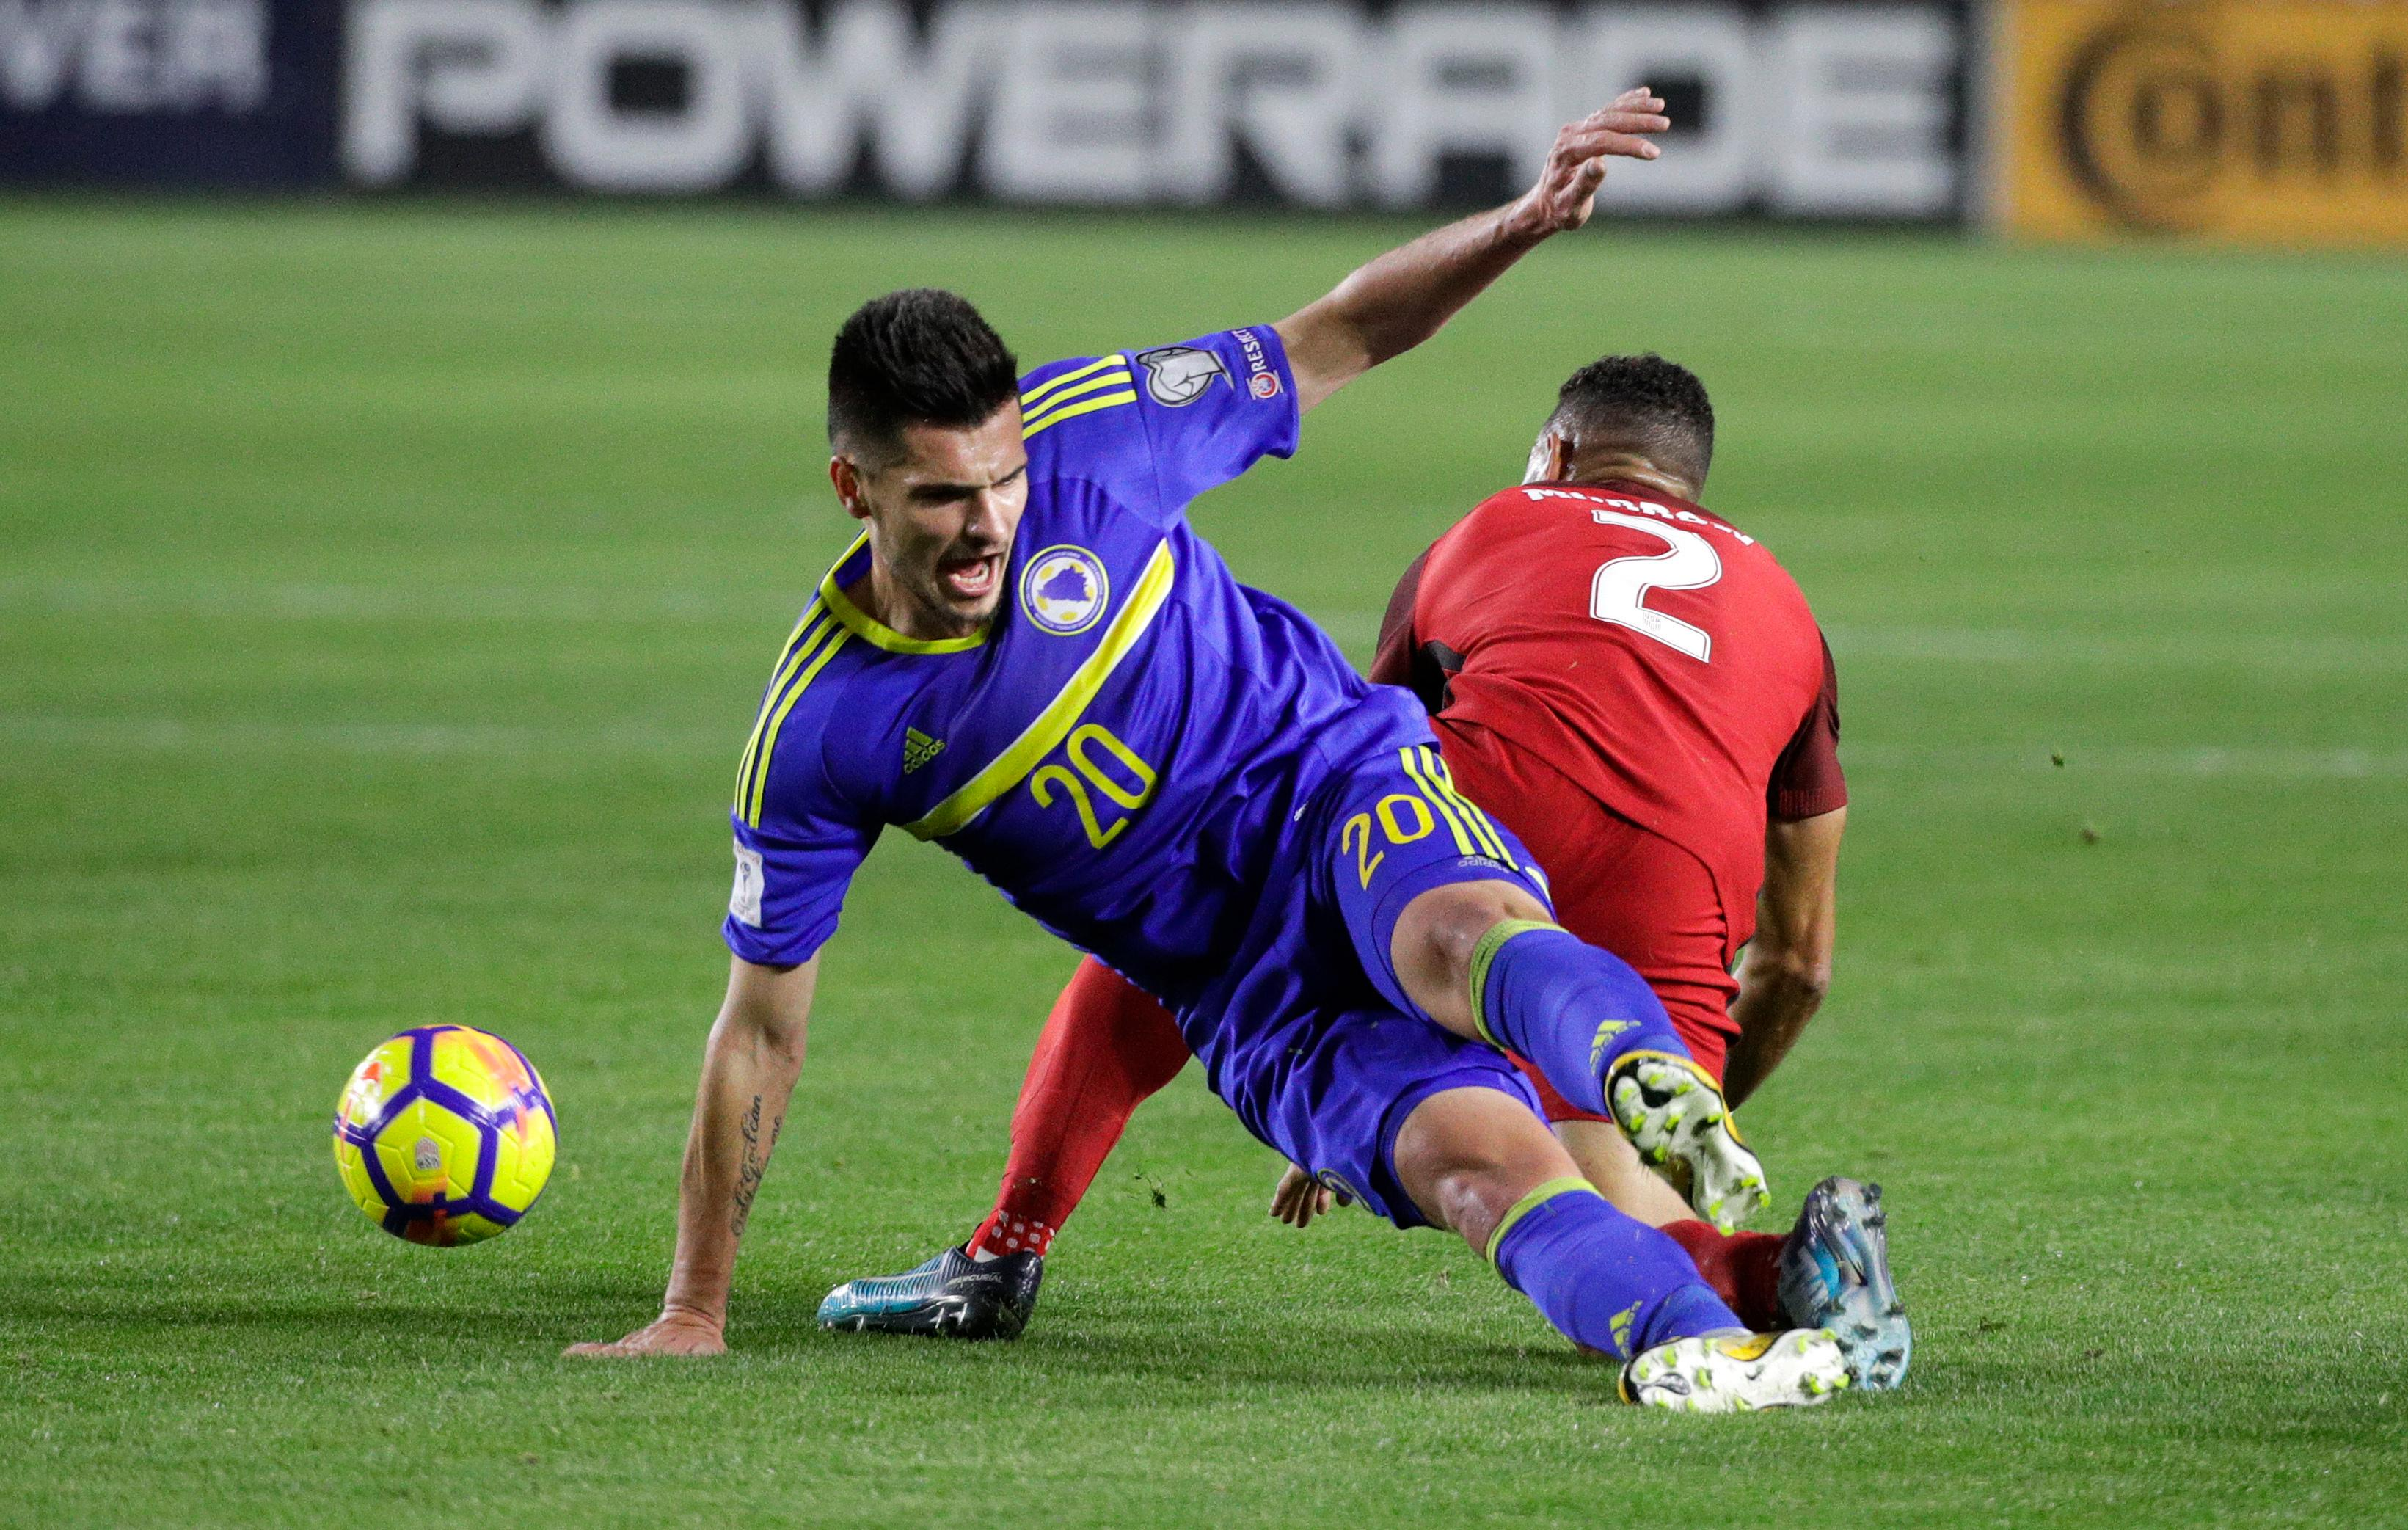 Bosnia and Herzegovina midfielder Goran Zakaric, left, and United States defender Justin Morrow tumble as they fight for the ball during the first half of an international friendly soccer match on Sunday, Jan. 28, 2018, in Carson, Calif. (AP Photo/Jae C. Hong)